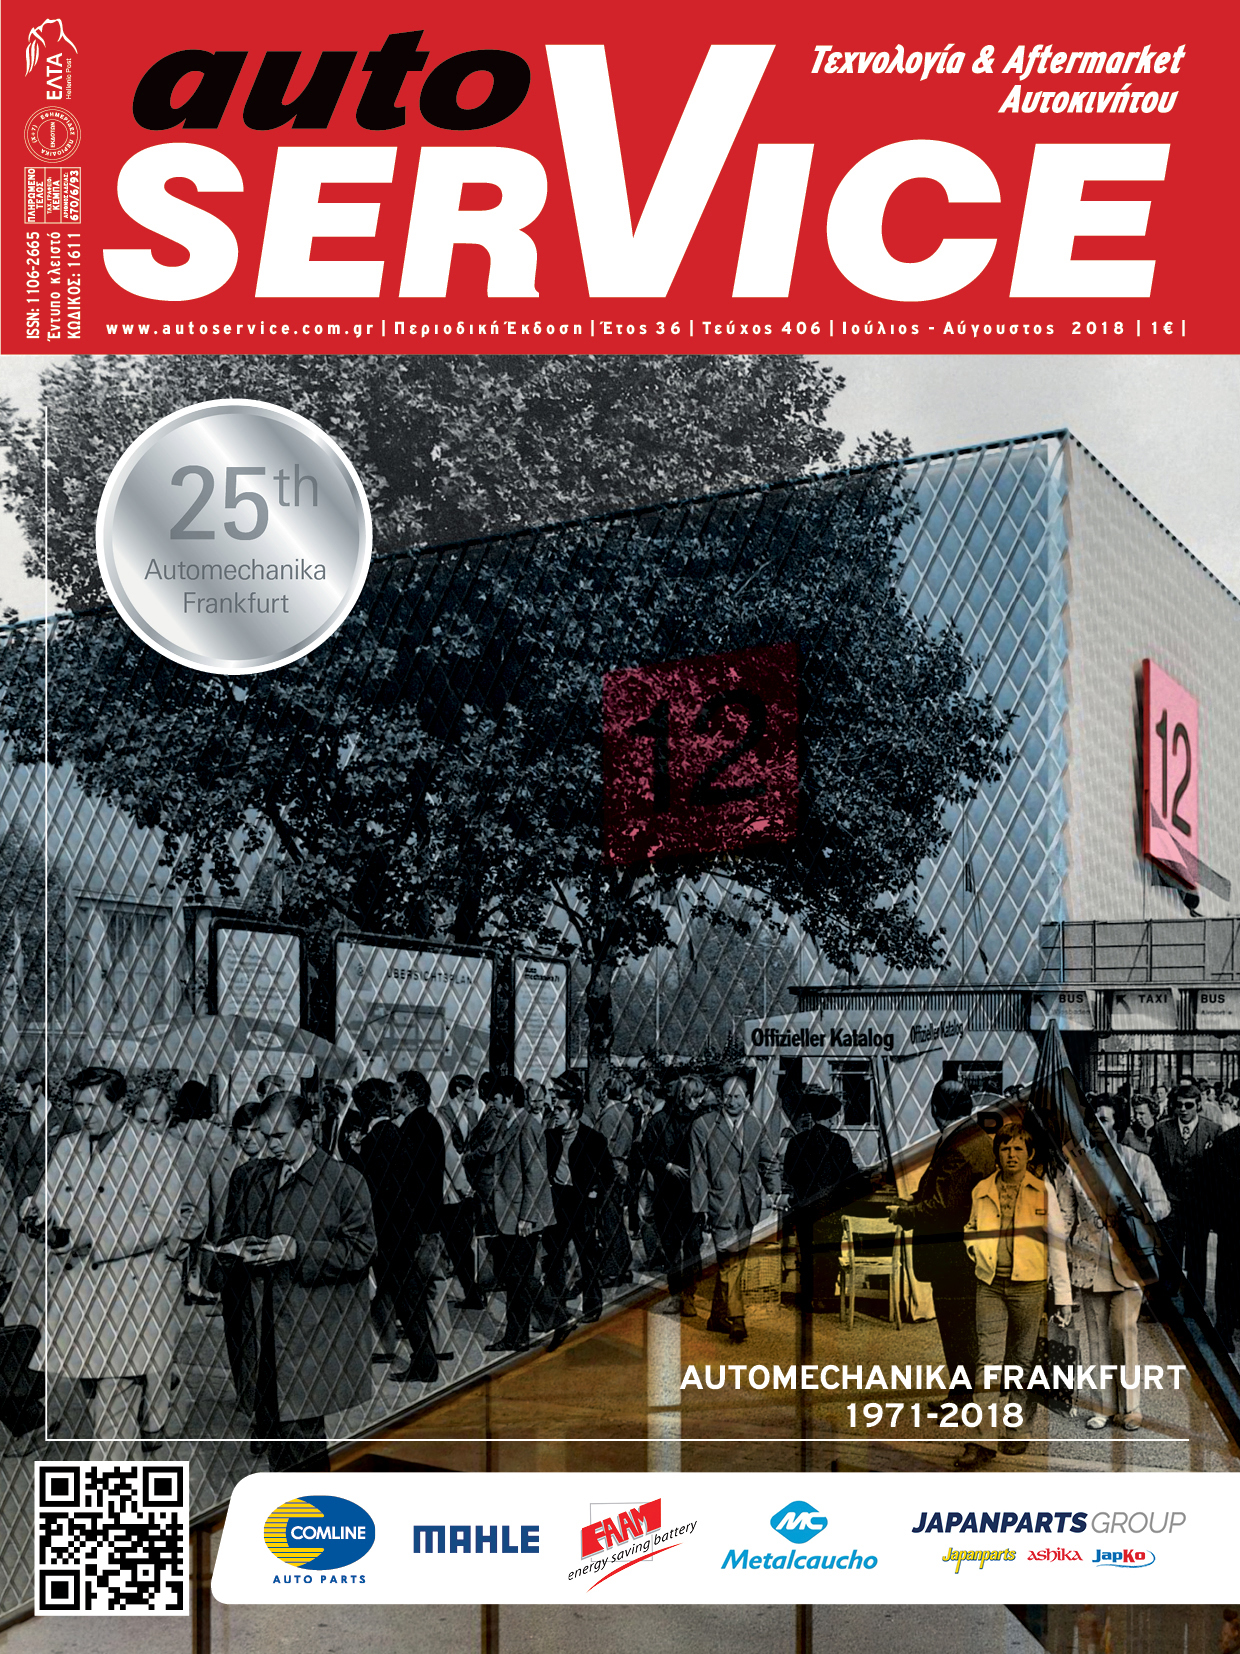 autoSERVICE July-August 2018